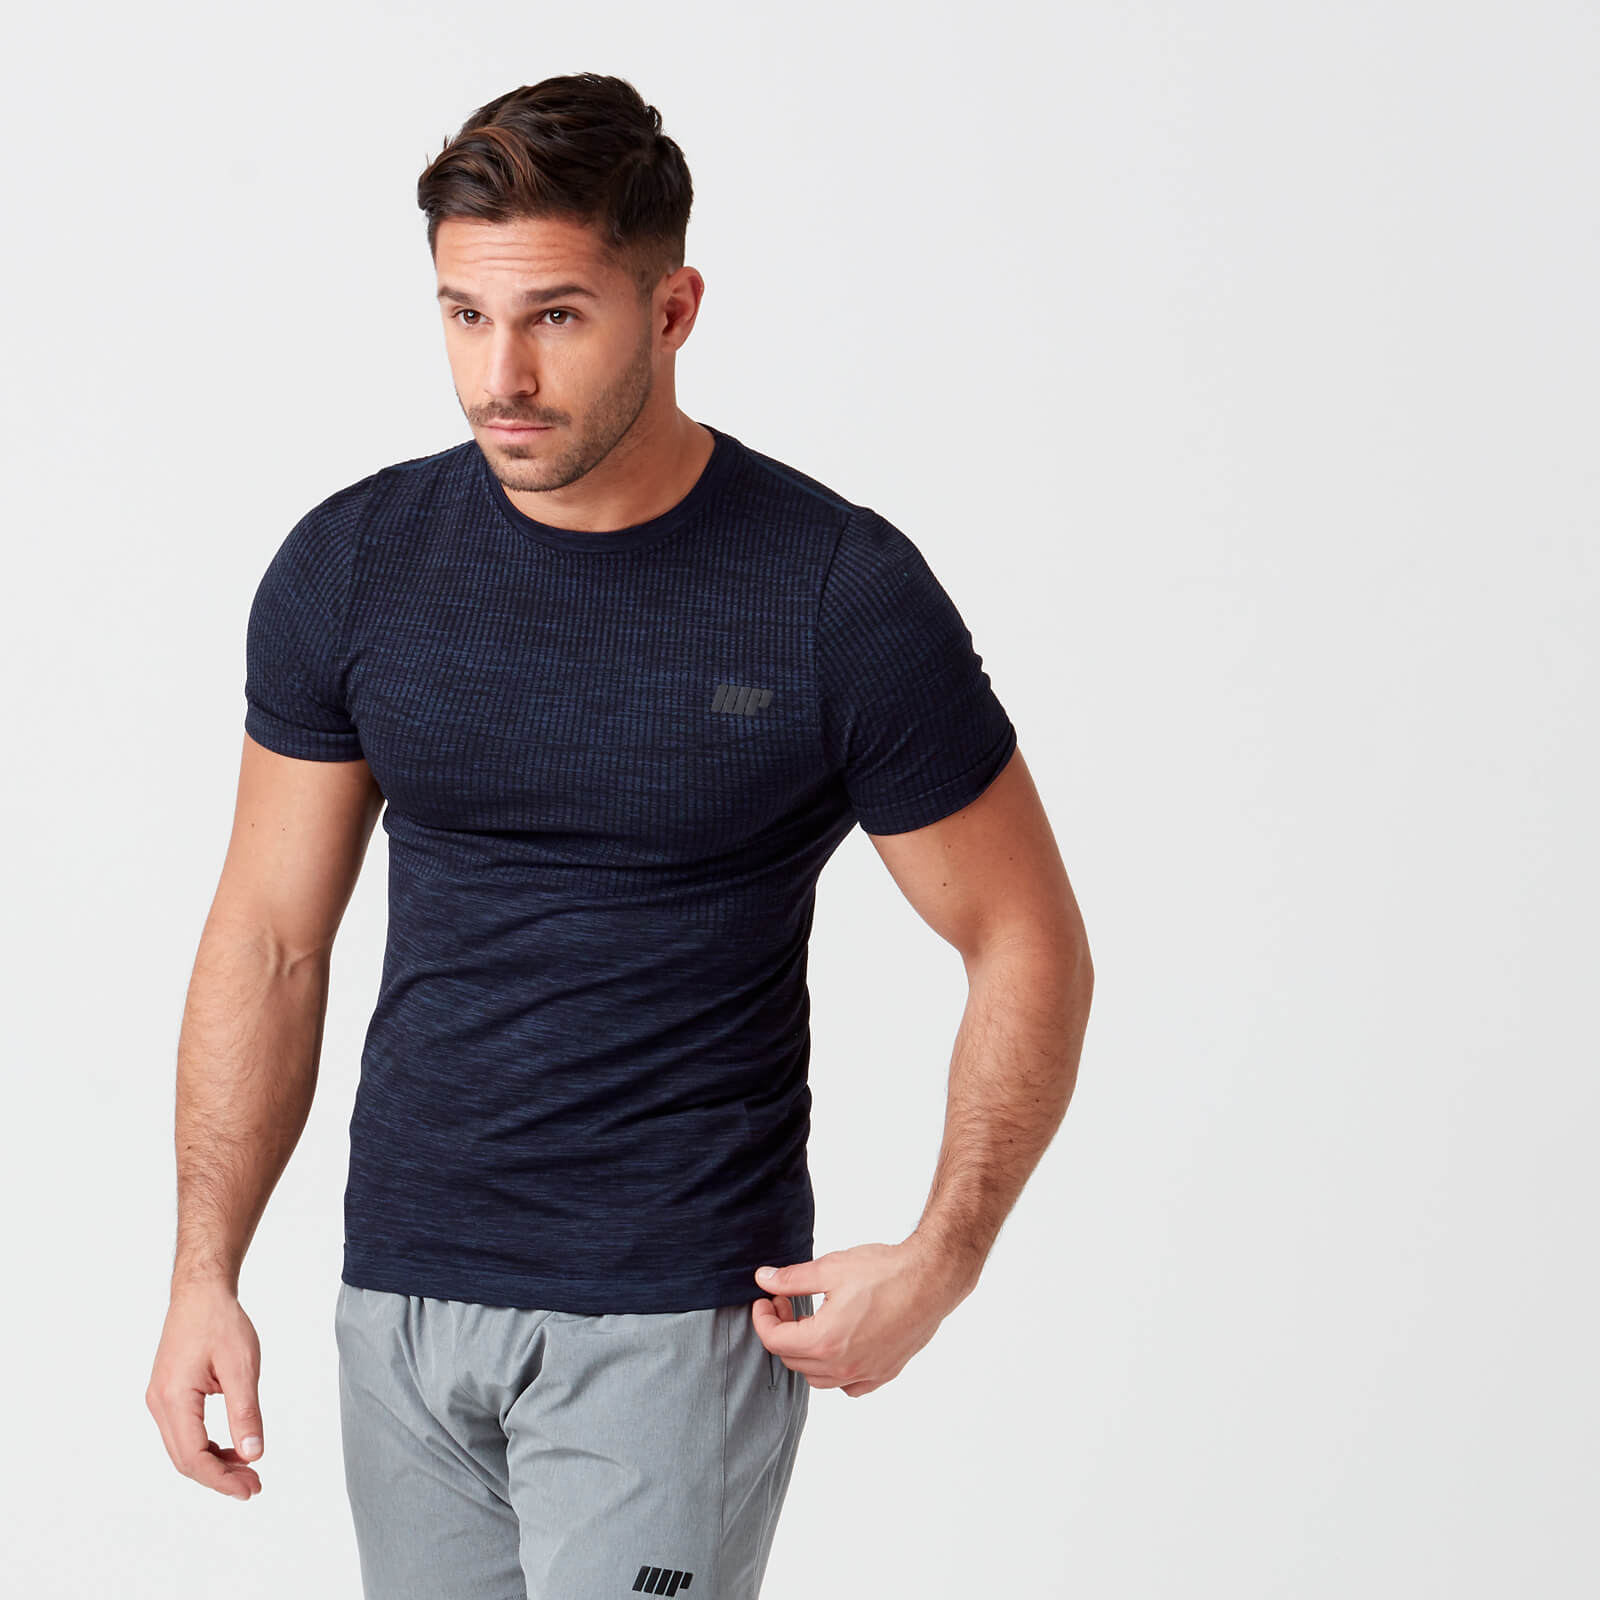 Sculpt Seamless T-Shirt - Navy - S